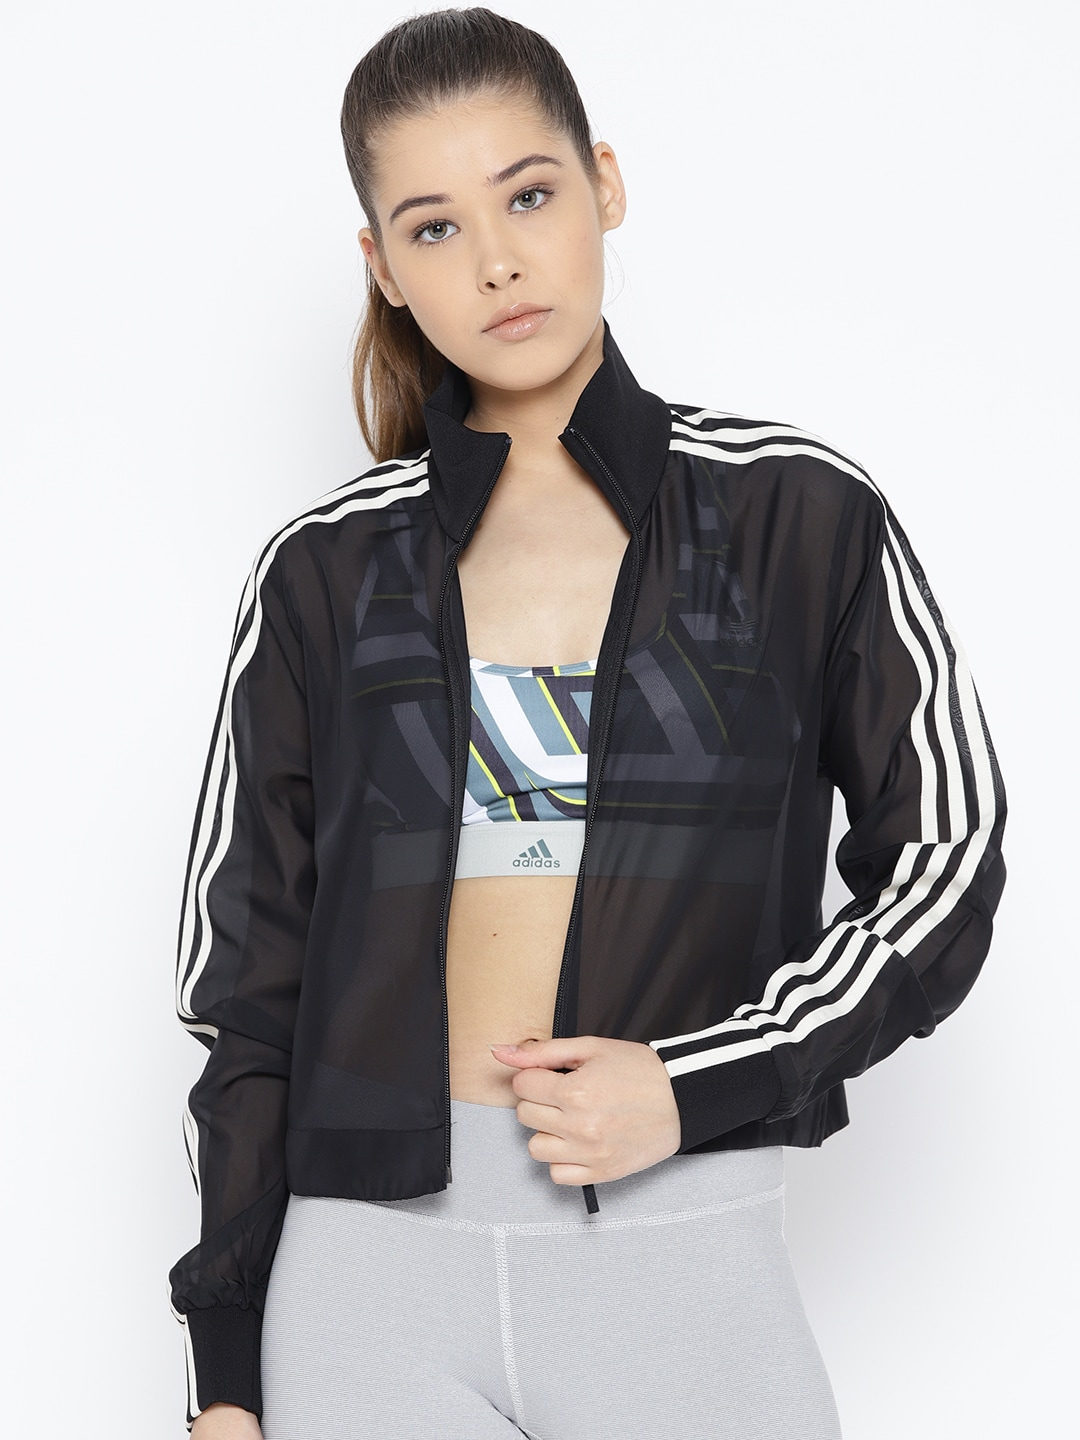 ADIDAS Originals Women Black Solid Track Jacket